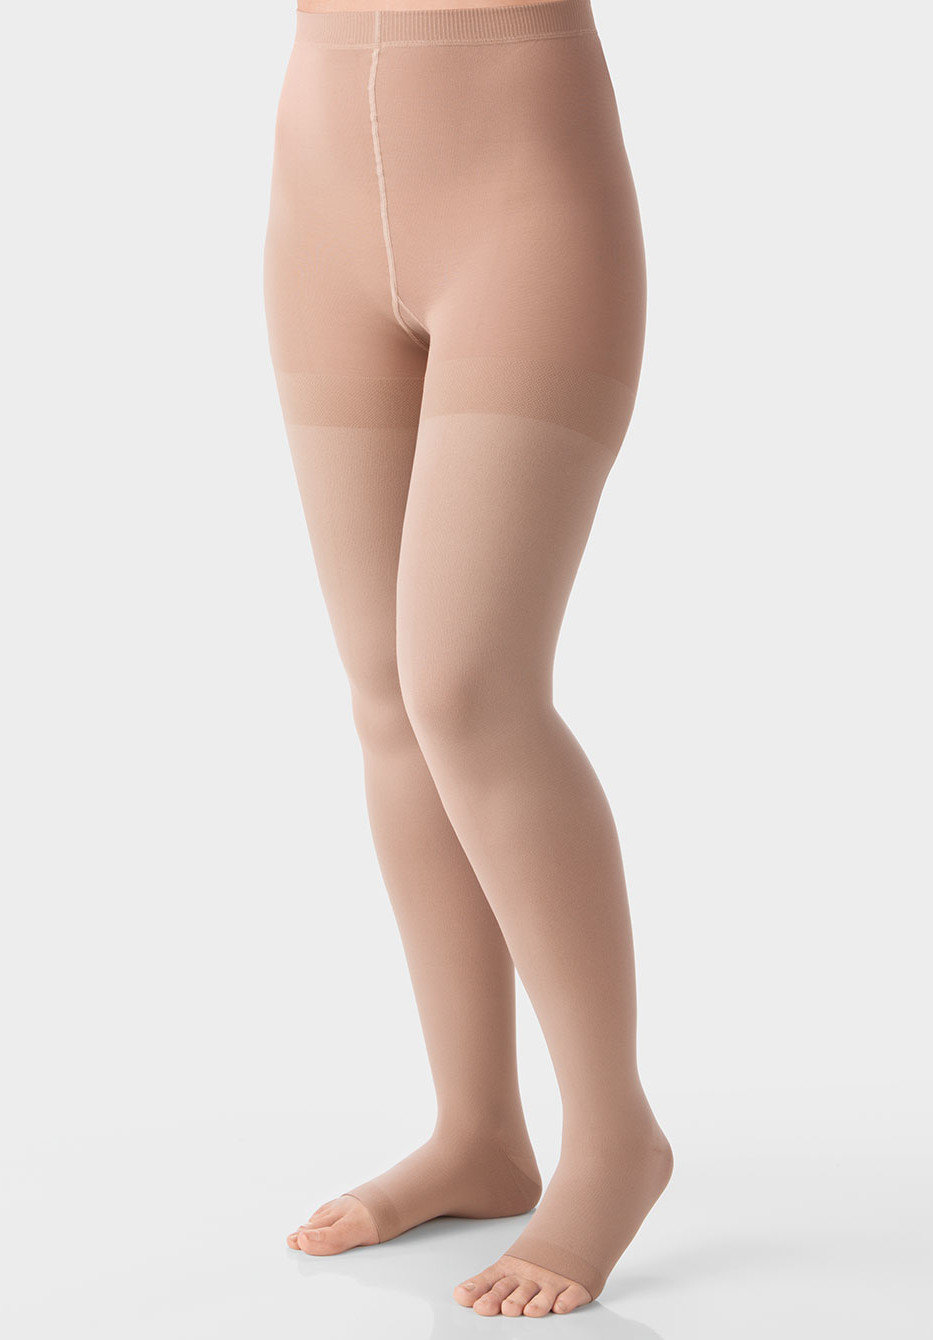 Vein treatment products with cotton